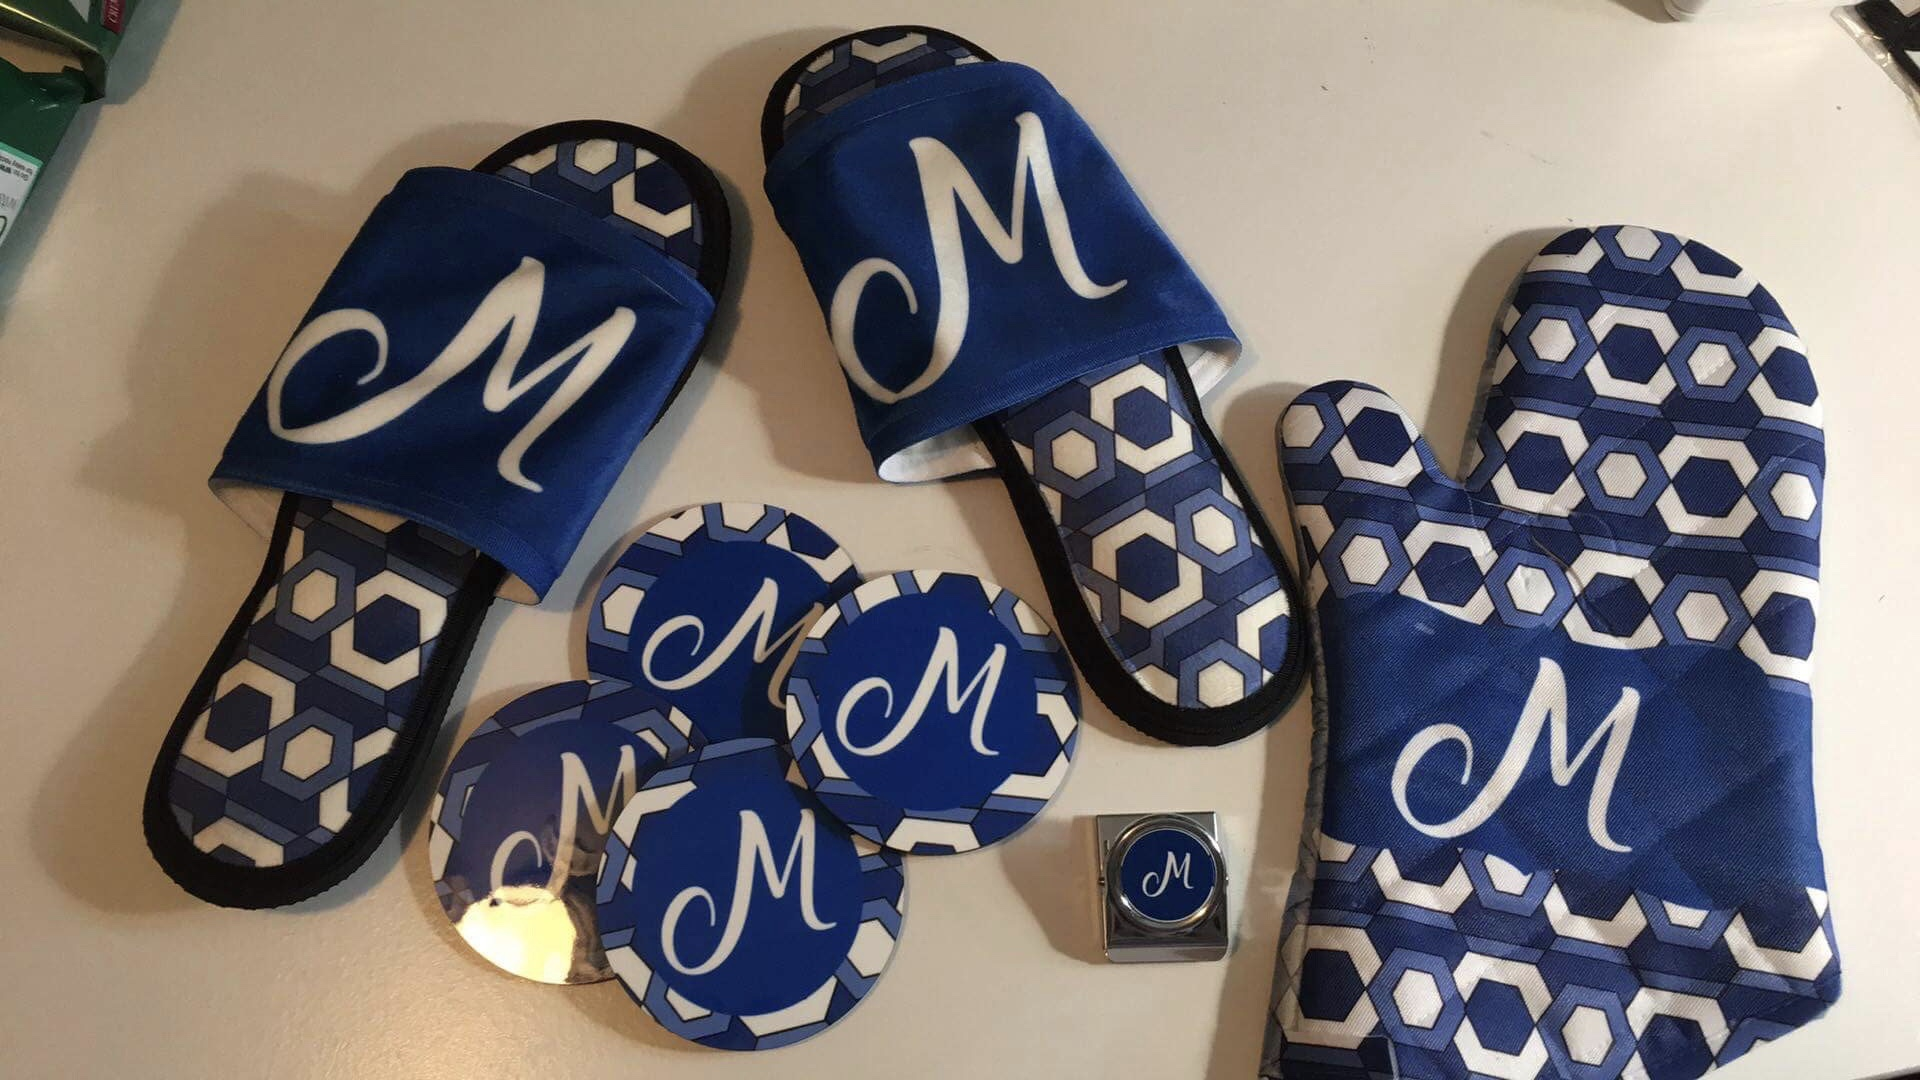 Custom Slippers, Magnets, Coasters, Ovenmit